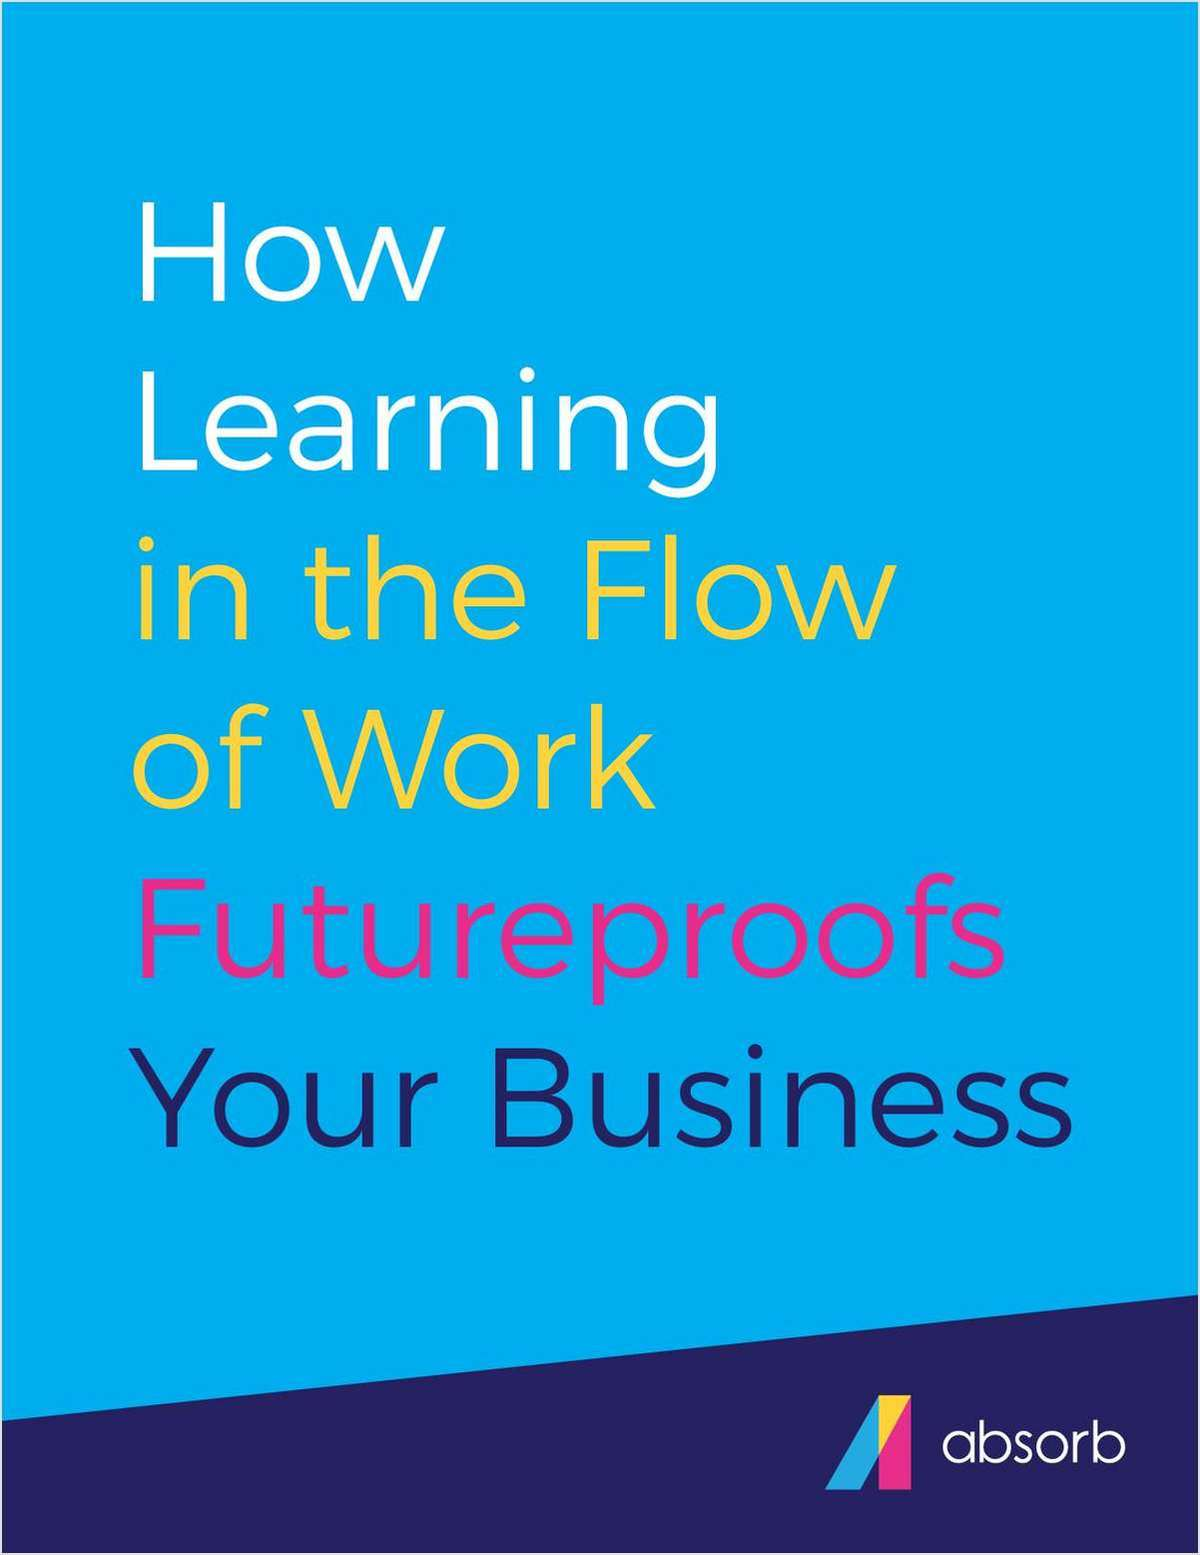 How Learning in the Flow of Work Futureproofs Your Business